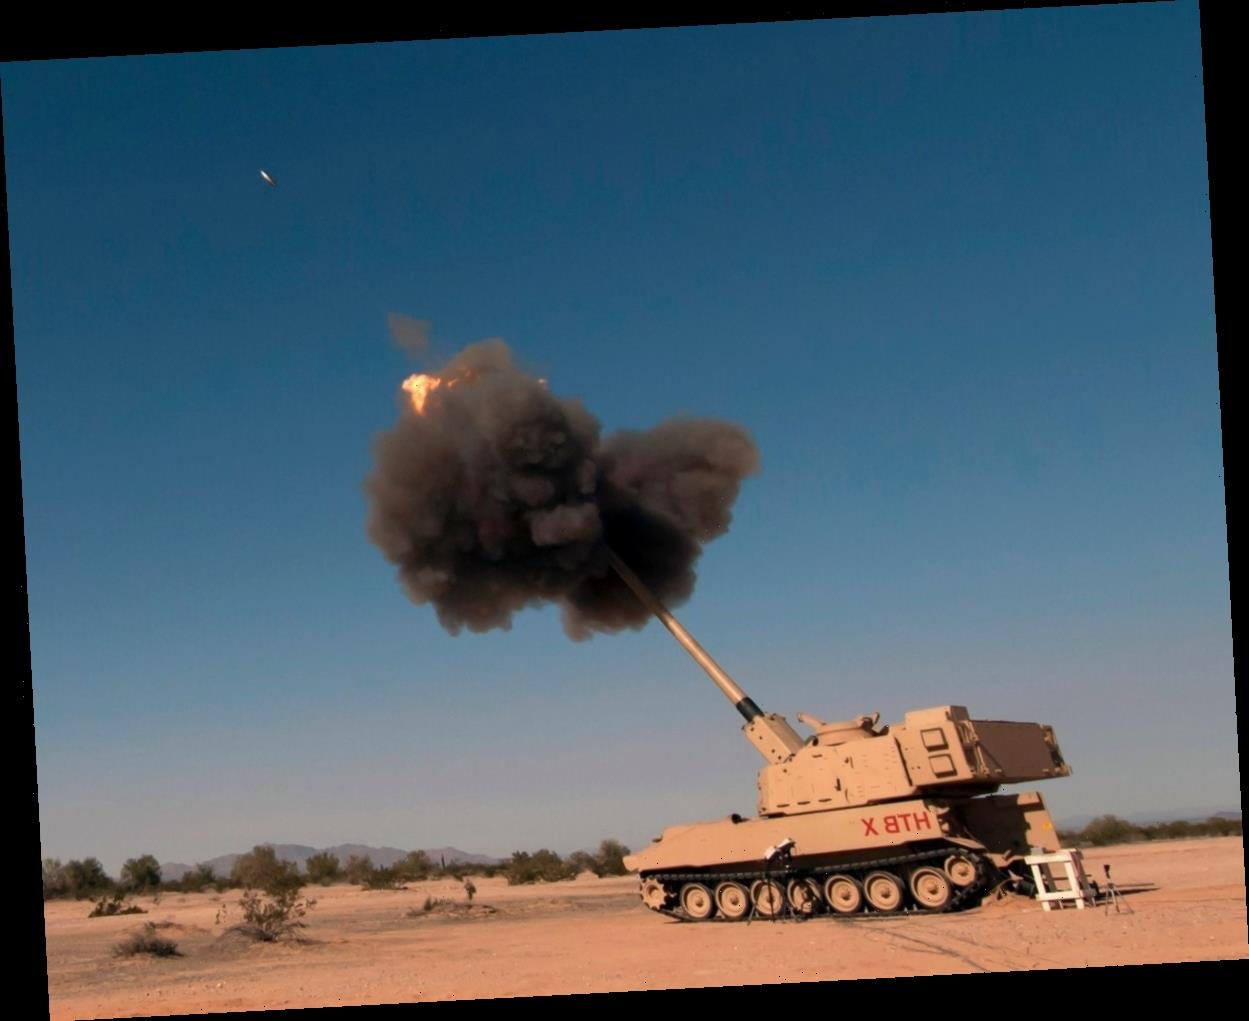 US army 'supergun' breaks record with direct hit on target 43 MILES away with Excalibur guided shell